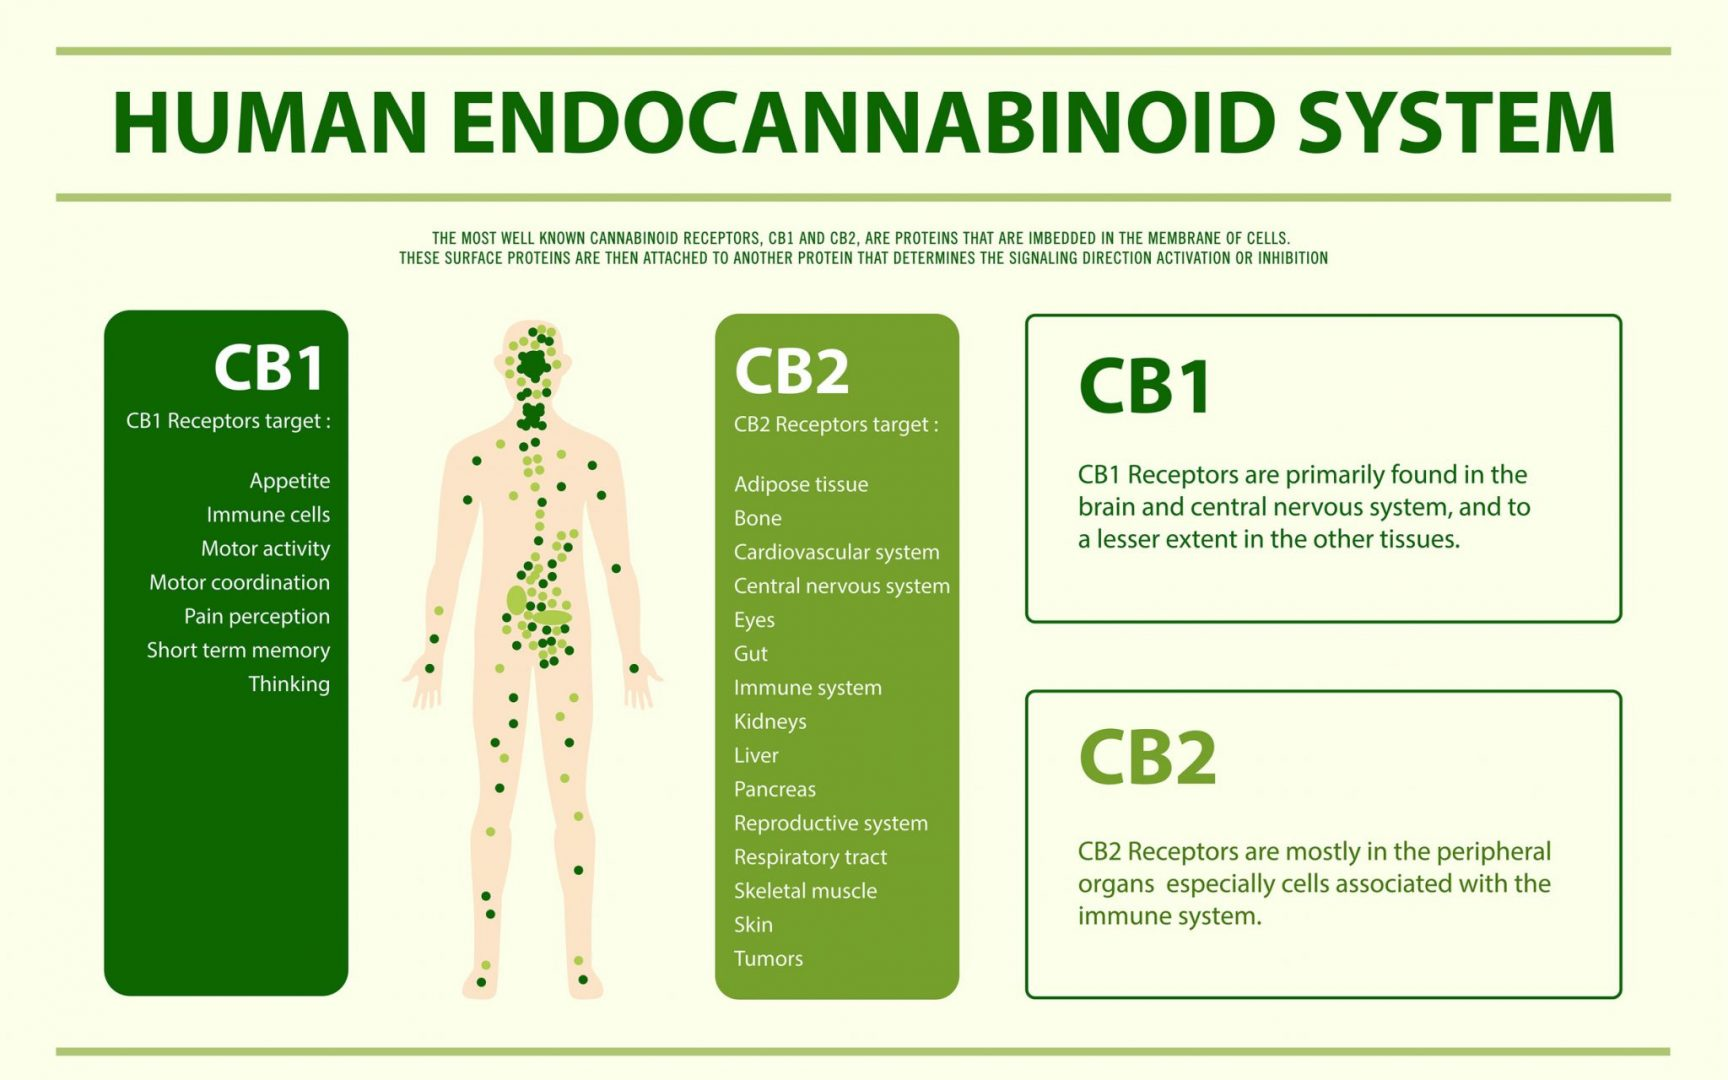 What Is The Endocanabinoid System?